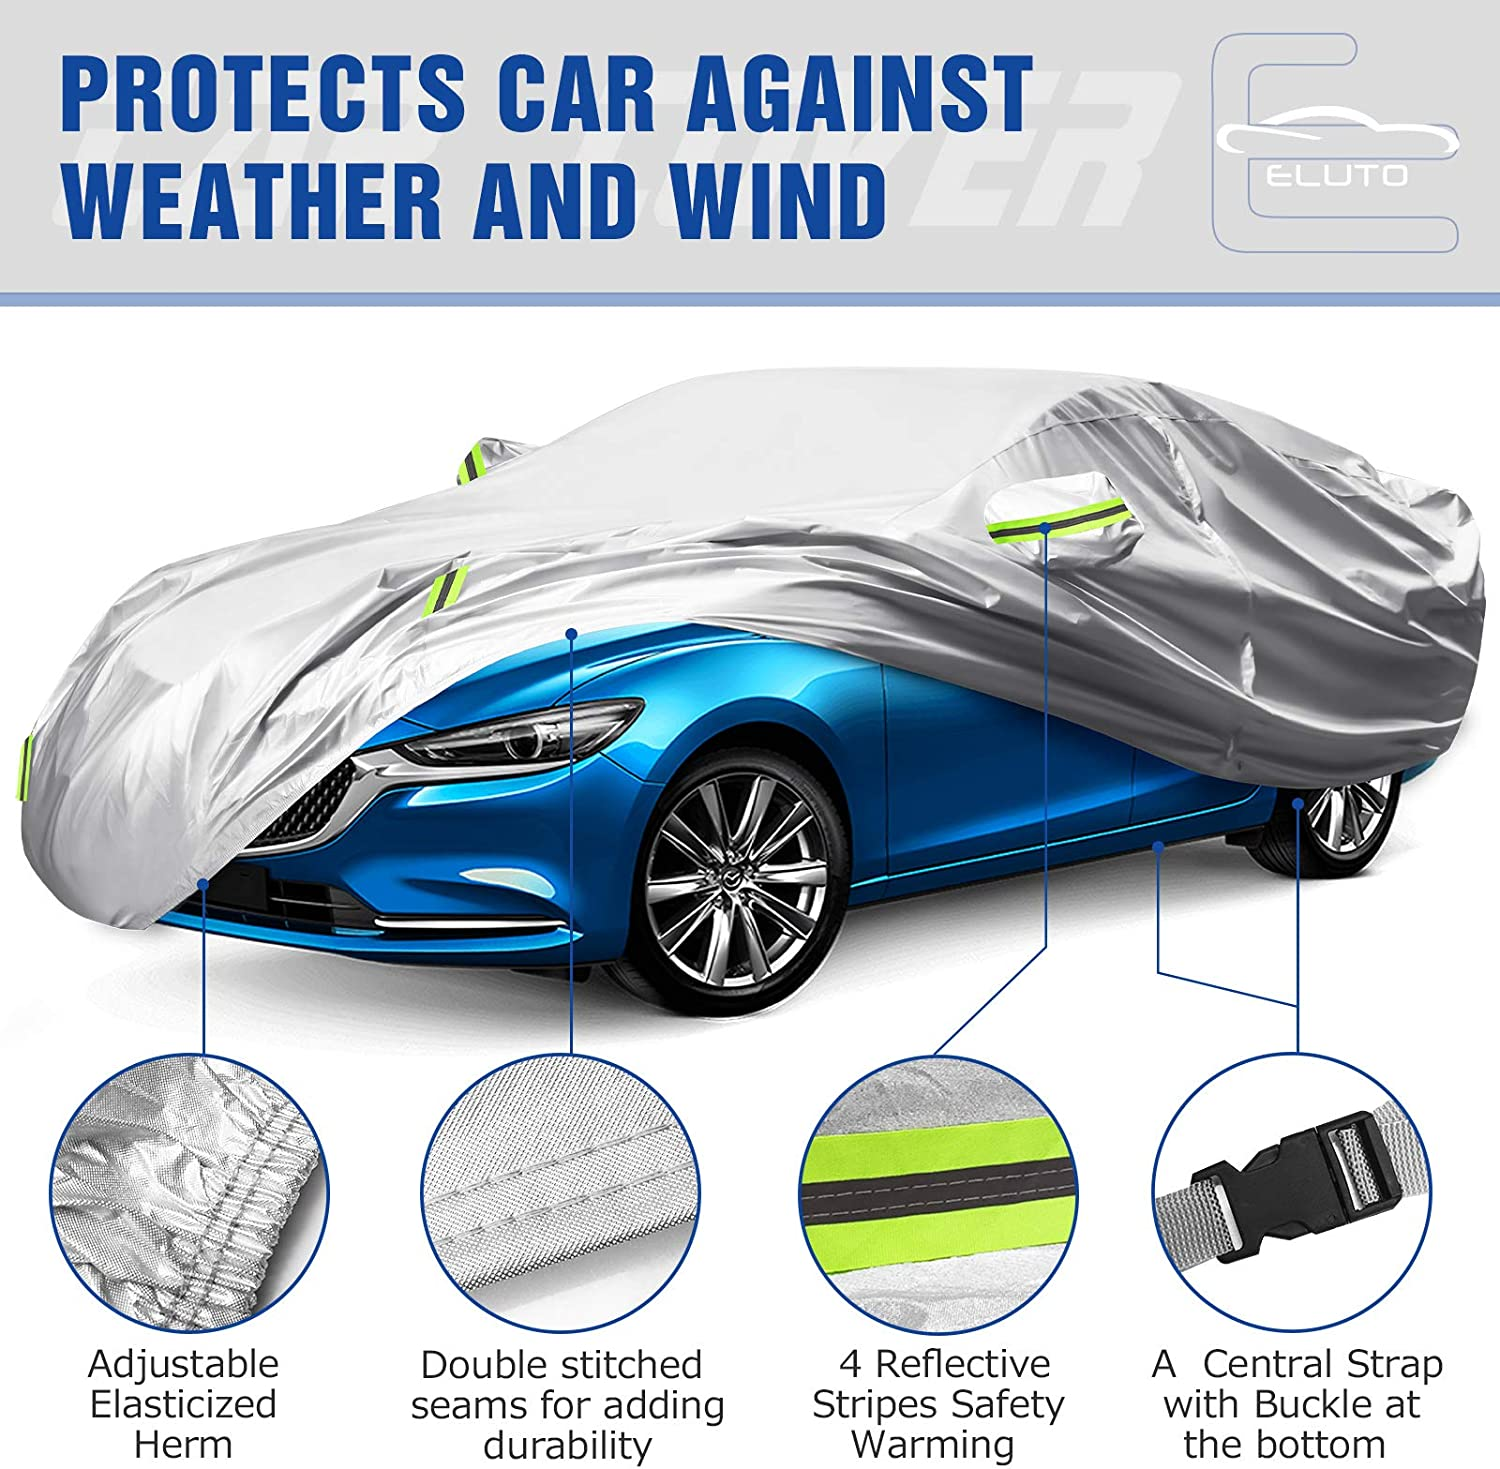 ELUTO Sedan Car Cover Waterproof All Weather 6 Layers Car Cover for Automobiles Outdoor Indoor Full Car Covers with Zipper Hatchback Car Cover UV Protection Vehicle Cover Up to 185/'/'L x 70/'/'W x 60/'/'H